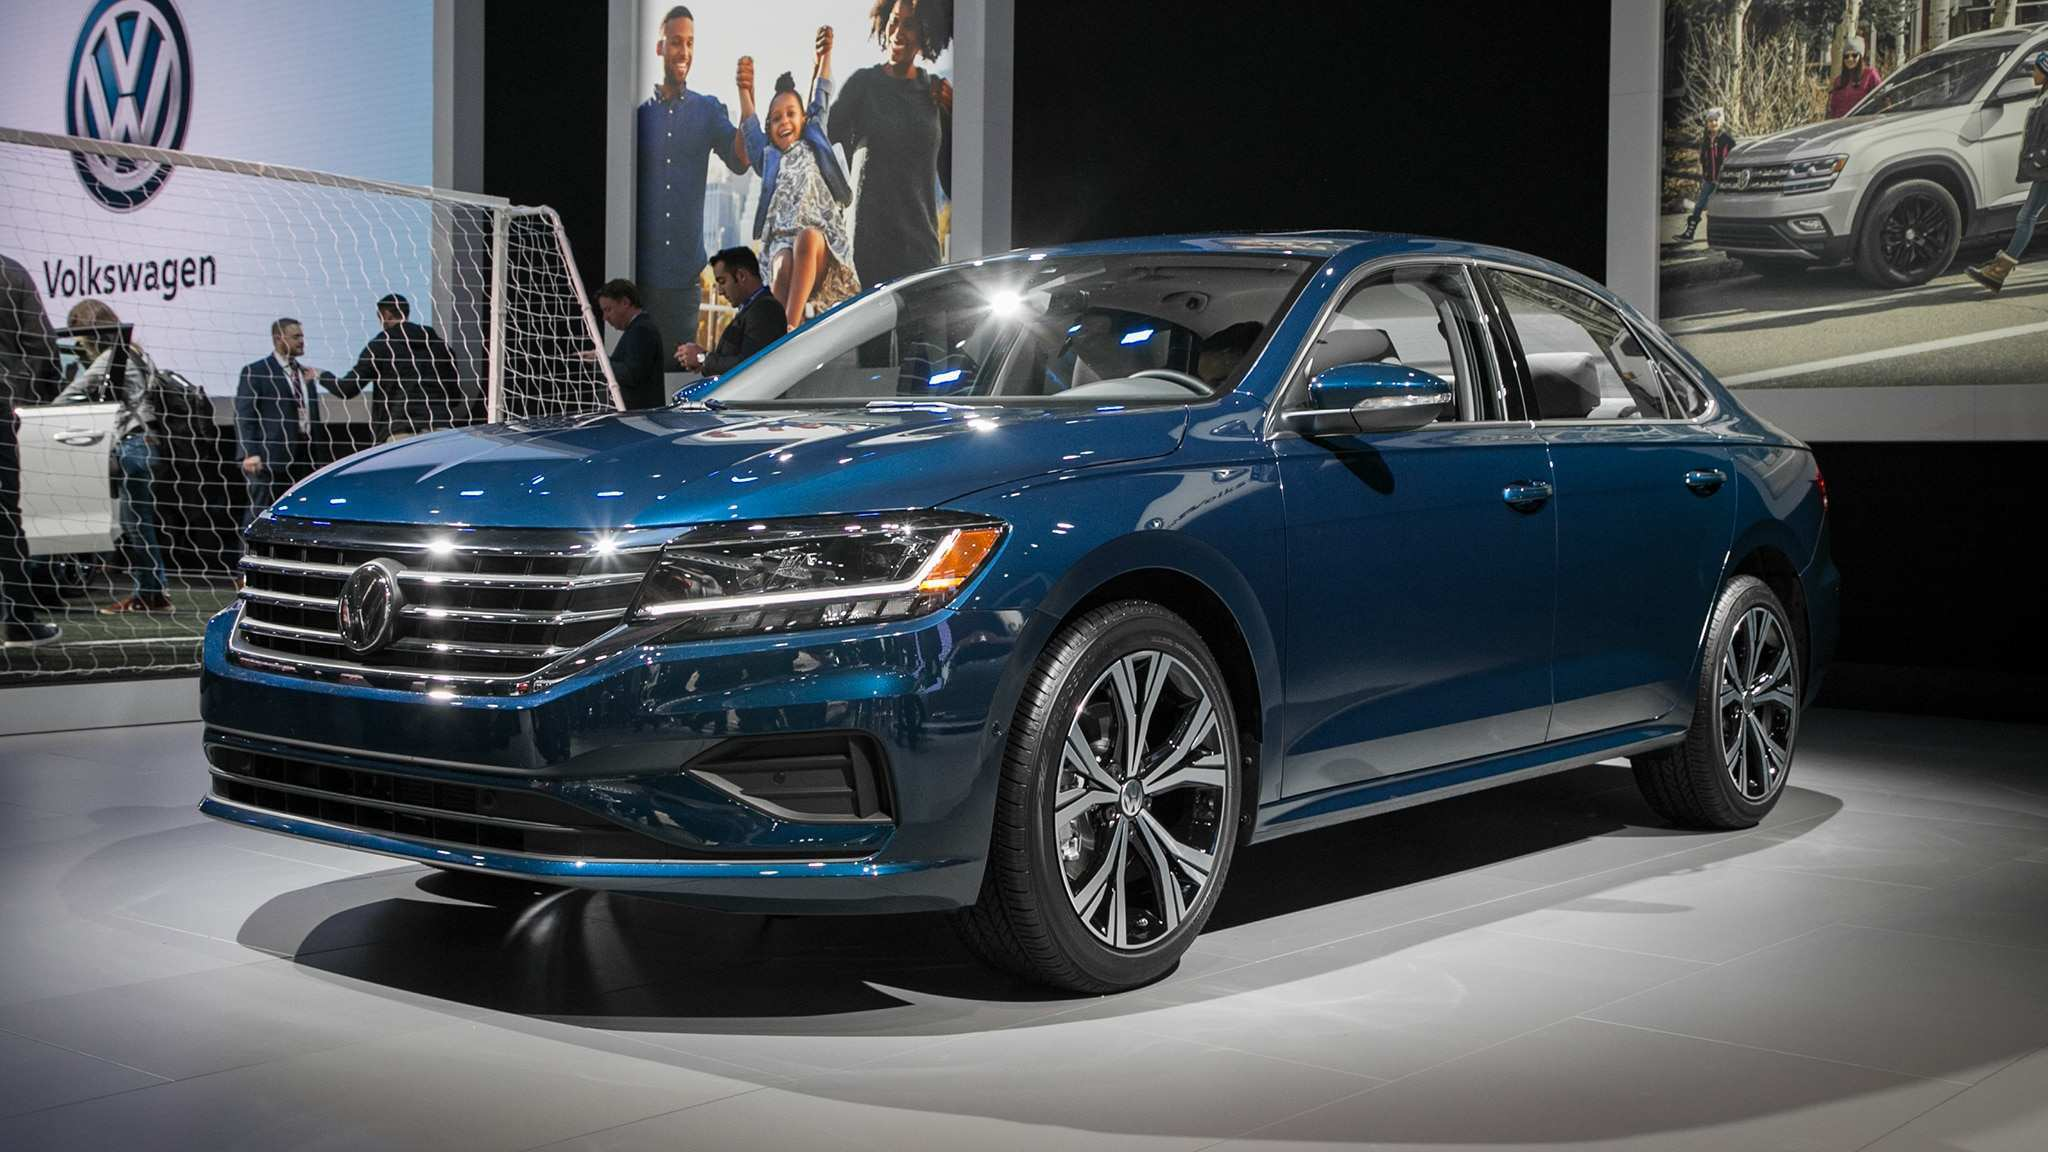 60 Best Review 2020 VW Passat Tdi Spesification by 2020 VW Passat Tdi